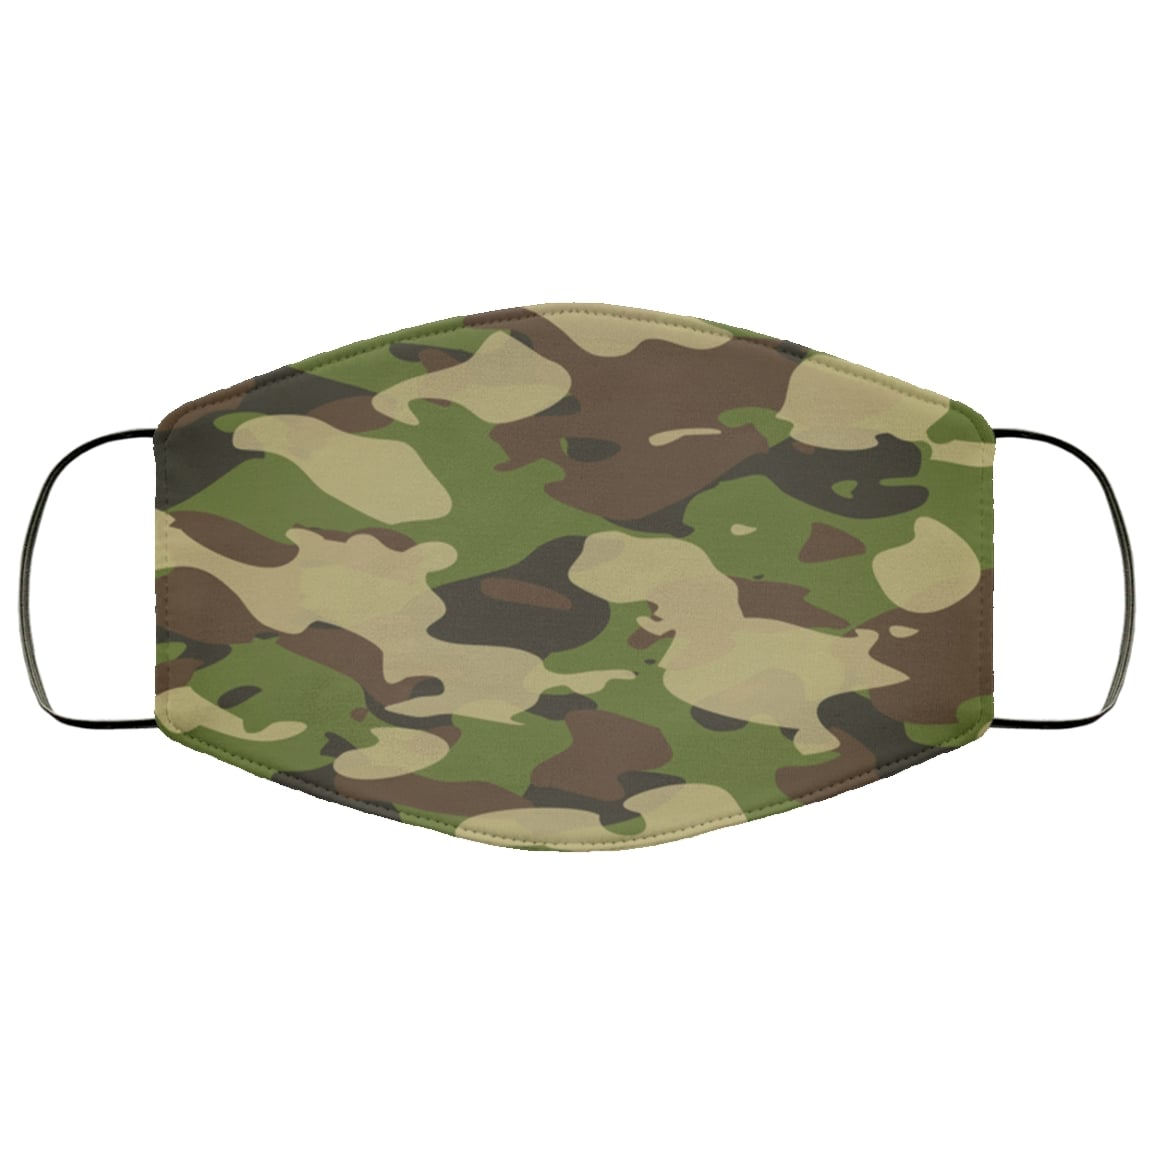 Camouflage army military anti pollution face mask 4